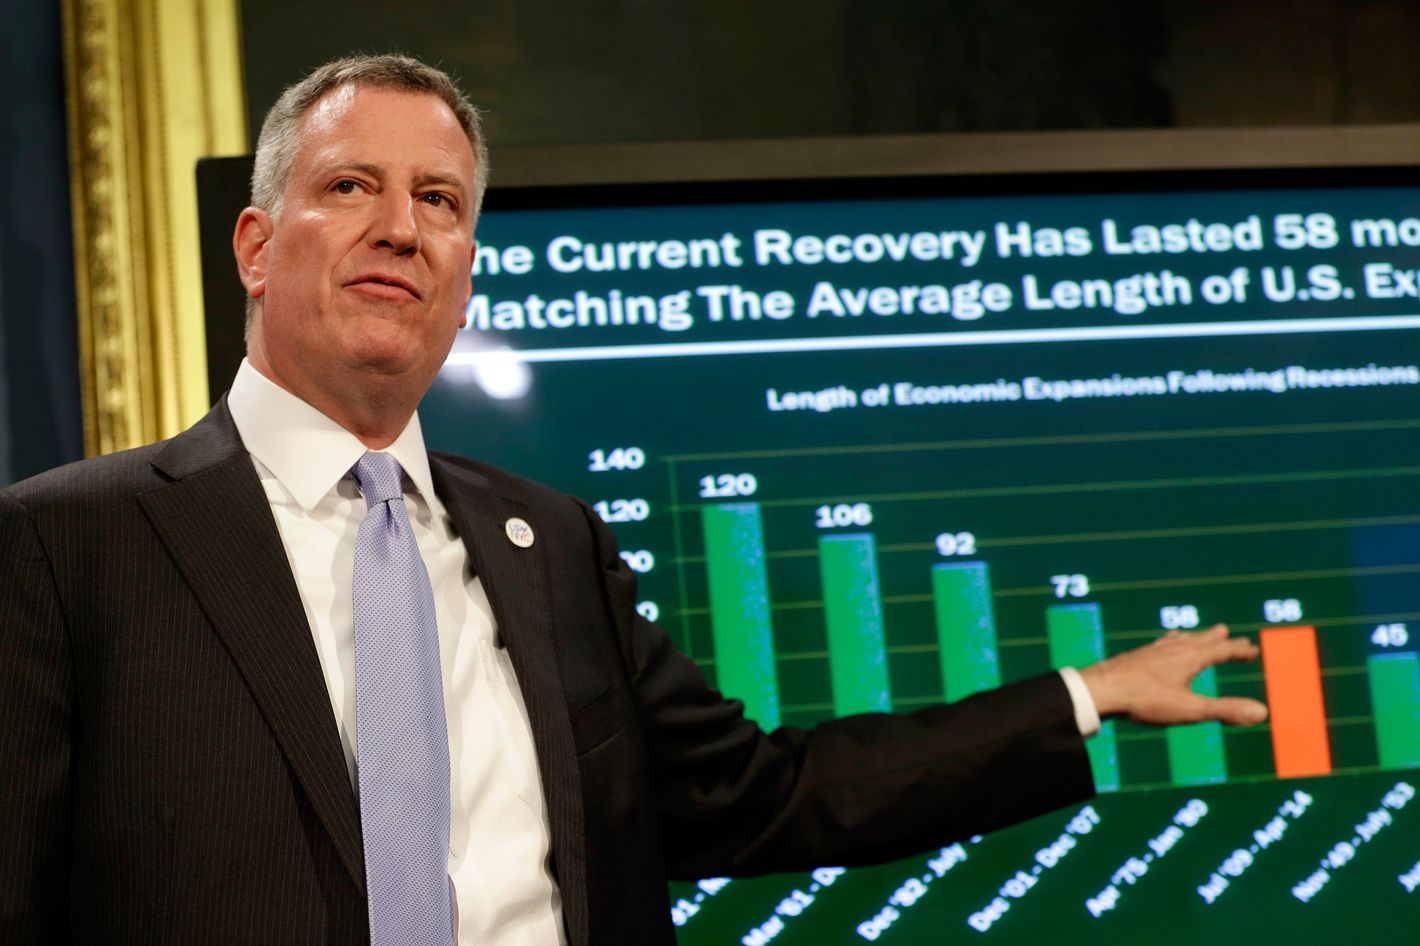 New York City Mayor Bill de Blasio presents the 2015 city budget at City Hall on May 8, 2014 in New York City. The Mayor unveiled a $73.9 billion spending plan for education, housing and infrastructure, amongst others.